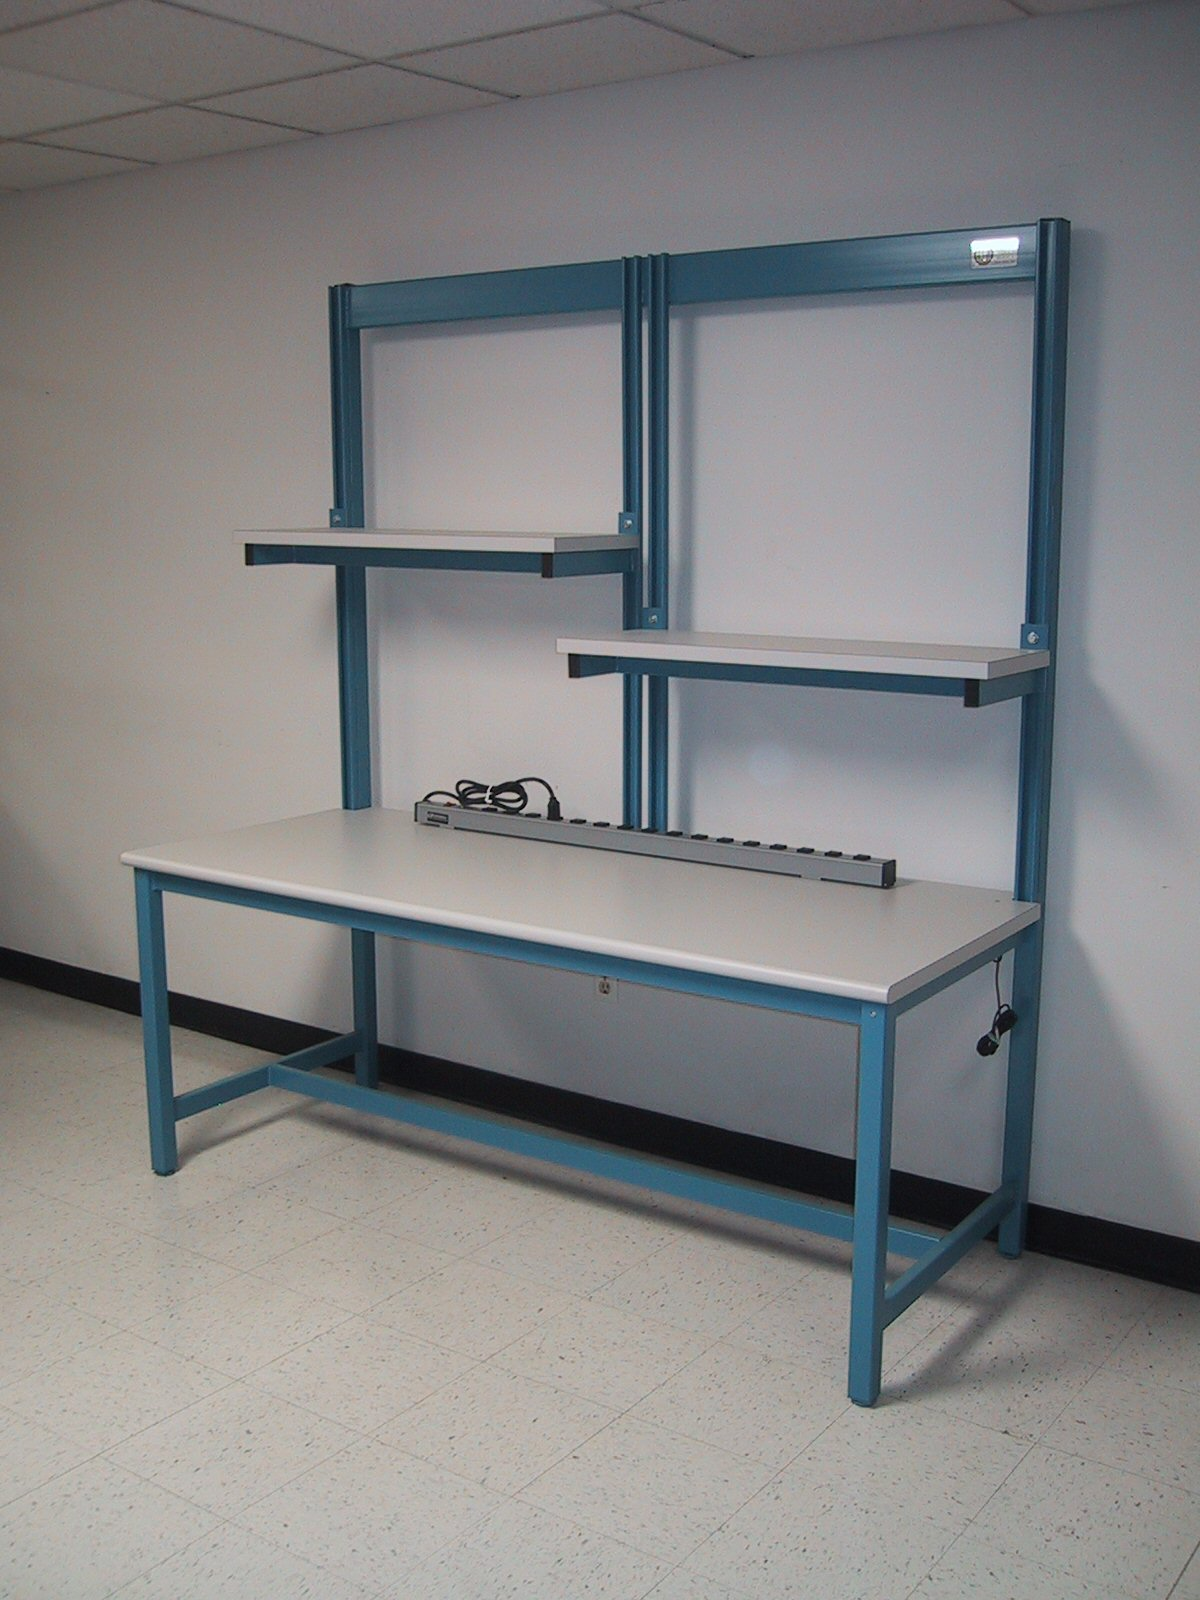 Rdm workbench f 103p sp tech table w split upper shelf Bench with shelf